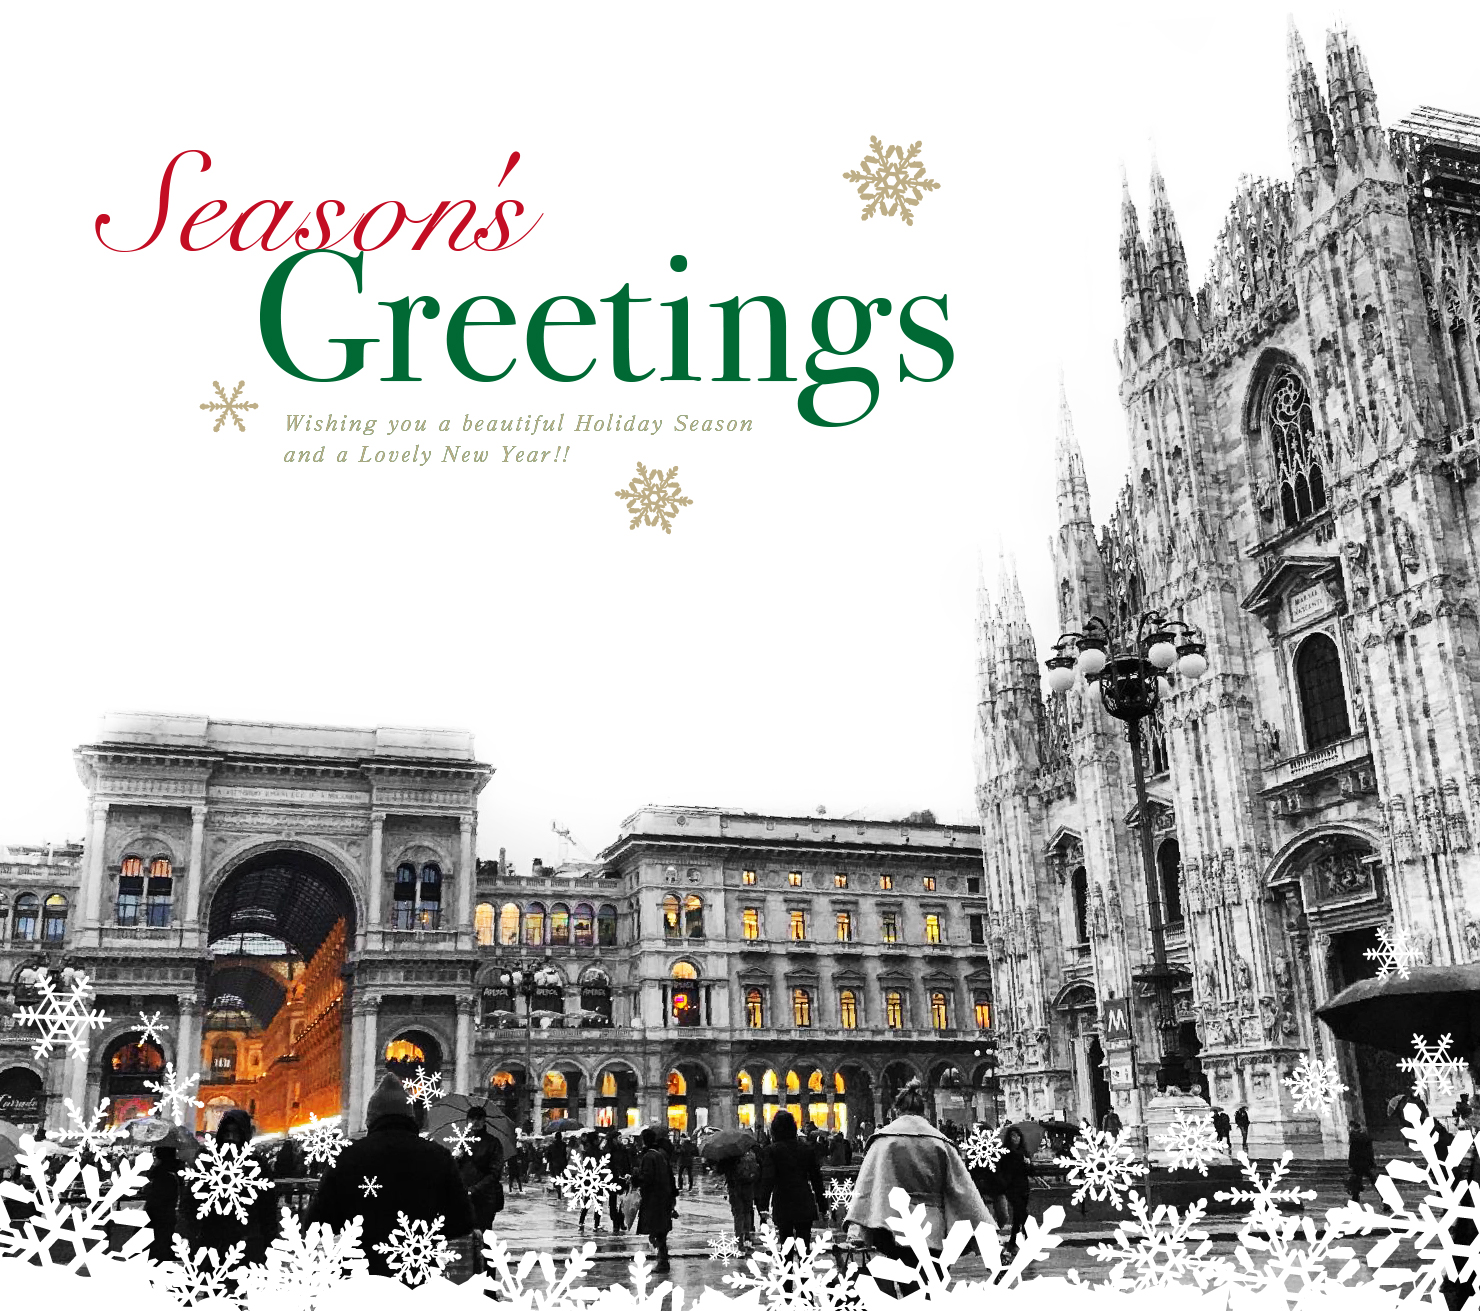 Season's Greetings Wishing you a beautiful Holiday Season and a Lovely New Year!